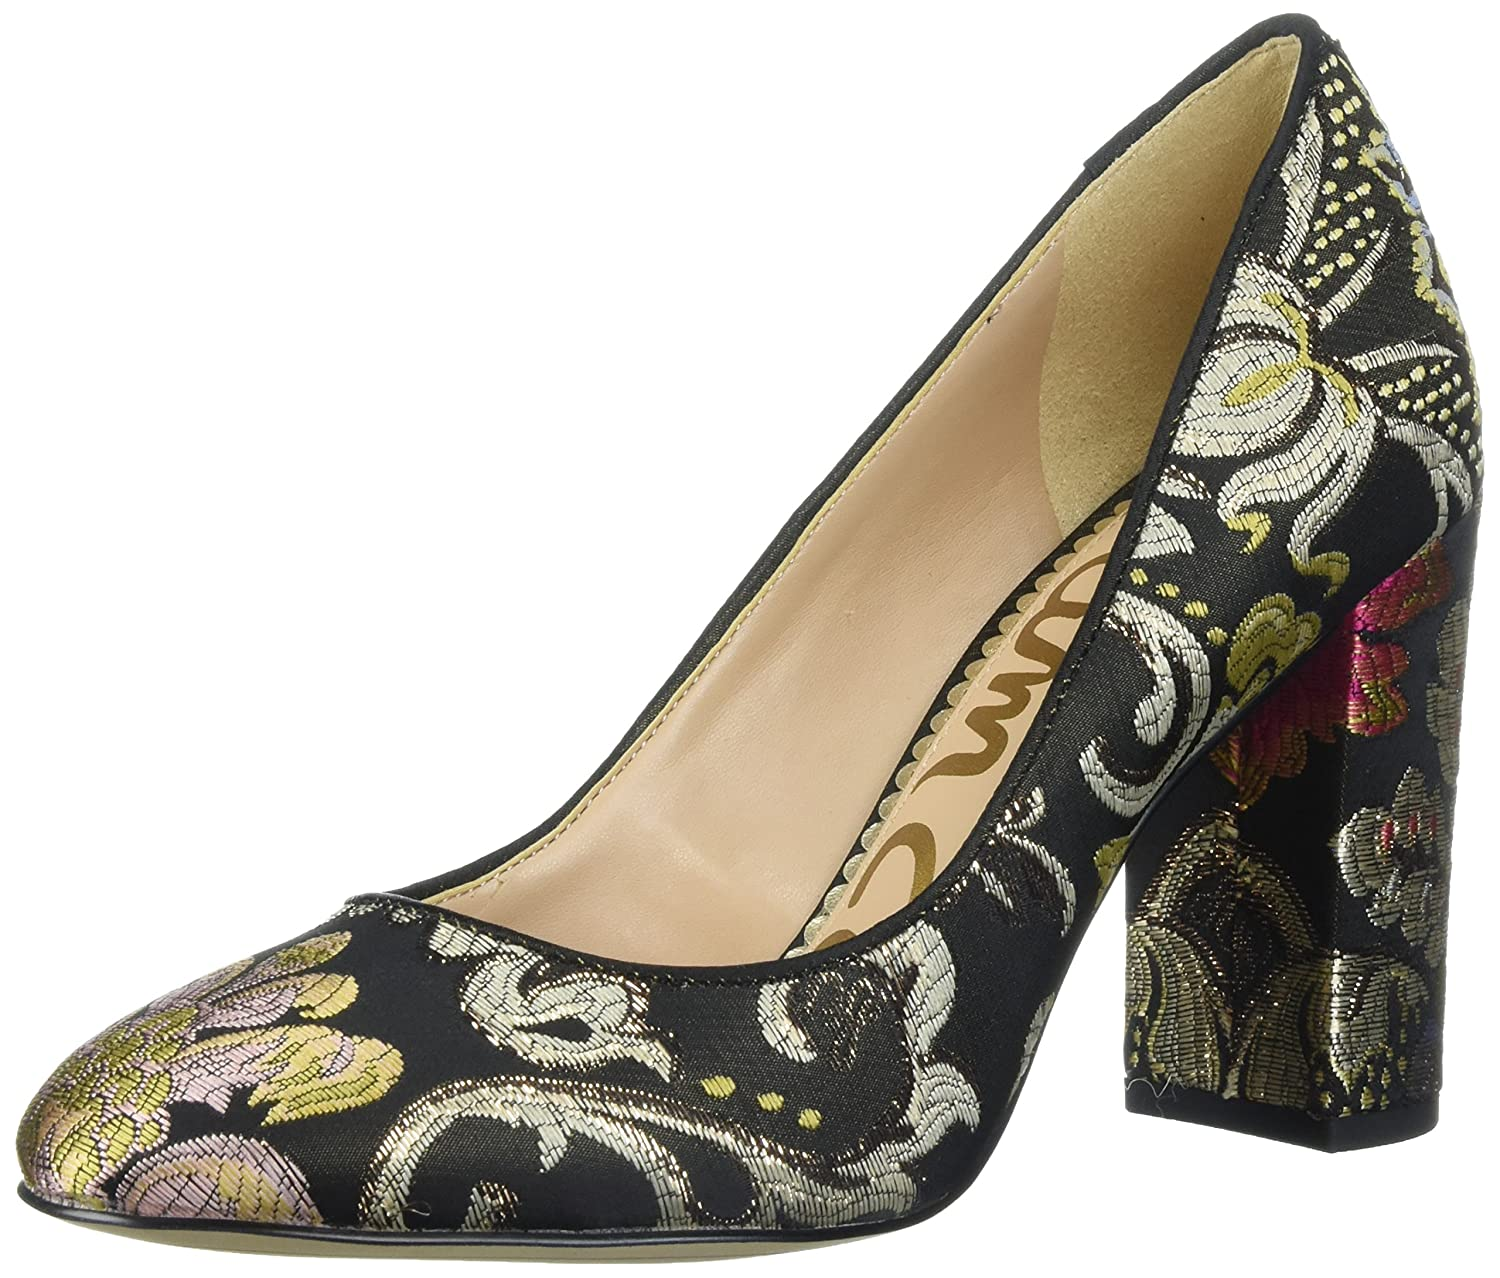 Sam Edelman Women's Stillson Pump B06XC1LMZY 5 B(M) US|Black/Multi Venezia Metallic Jacquard